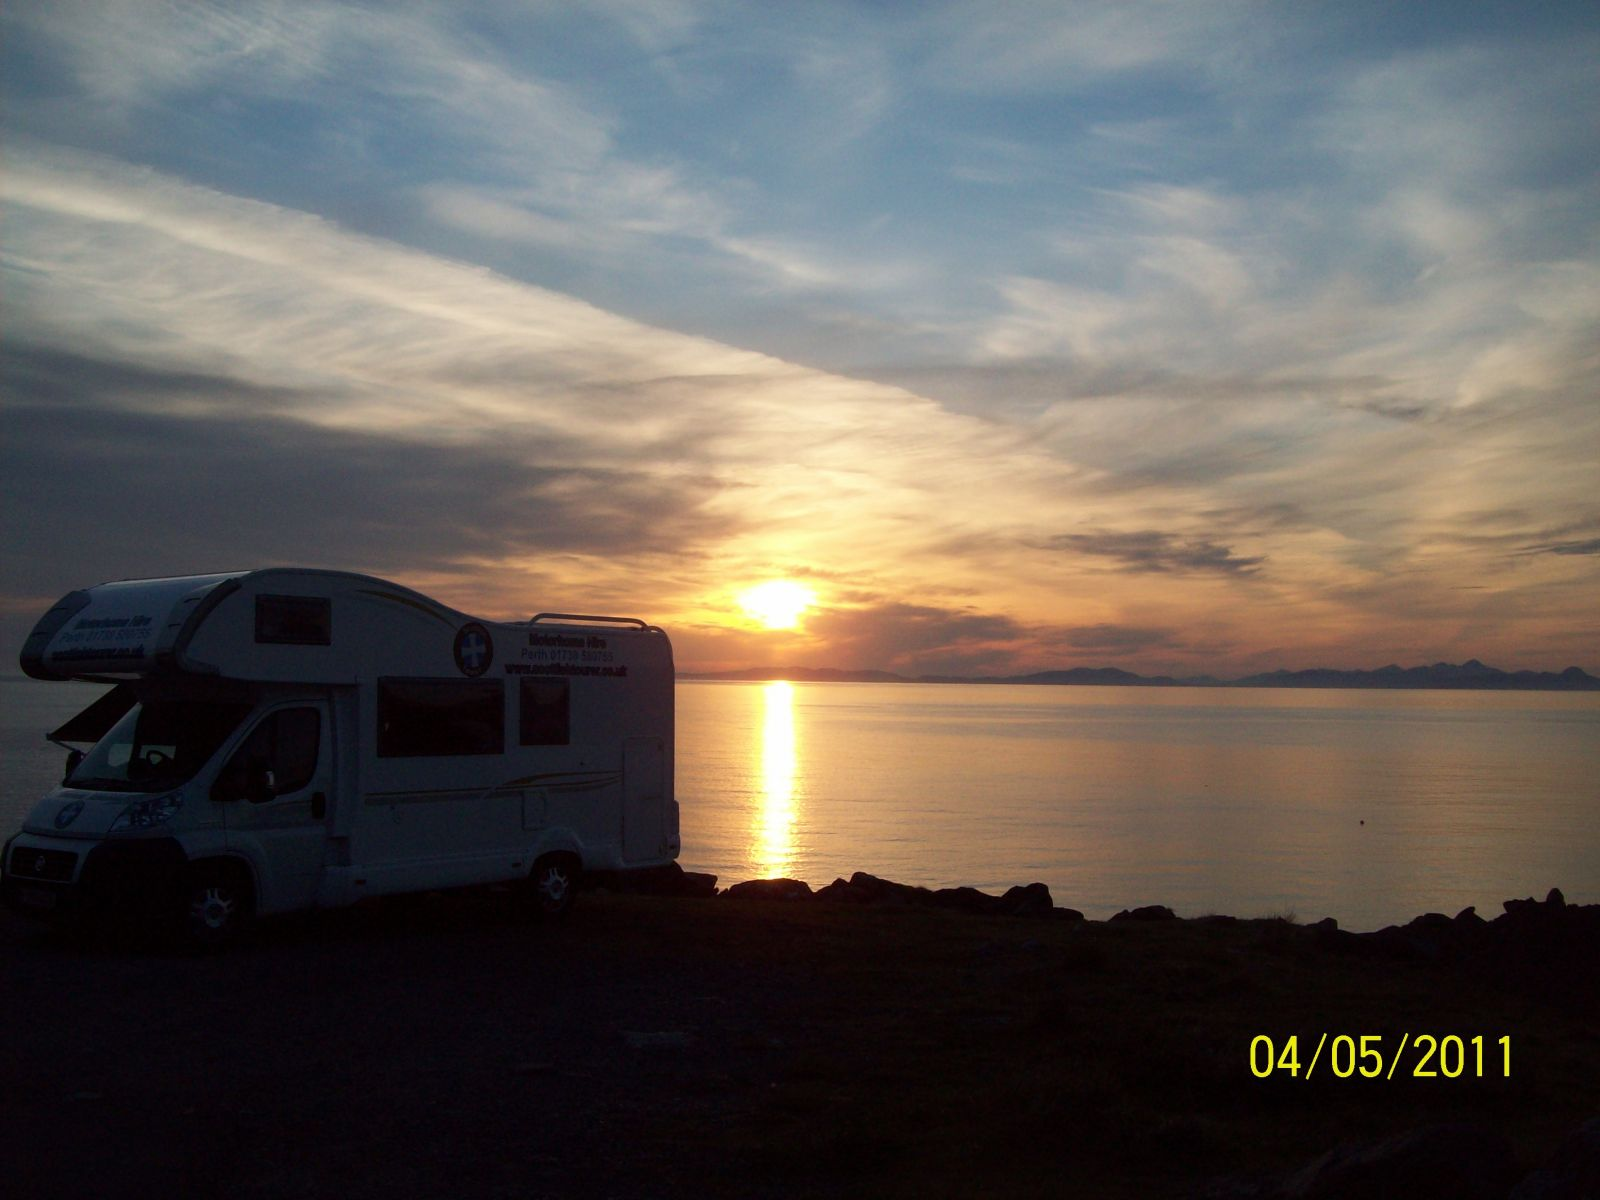 Sunset with the motorhome